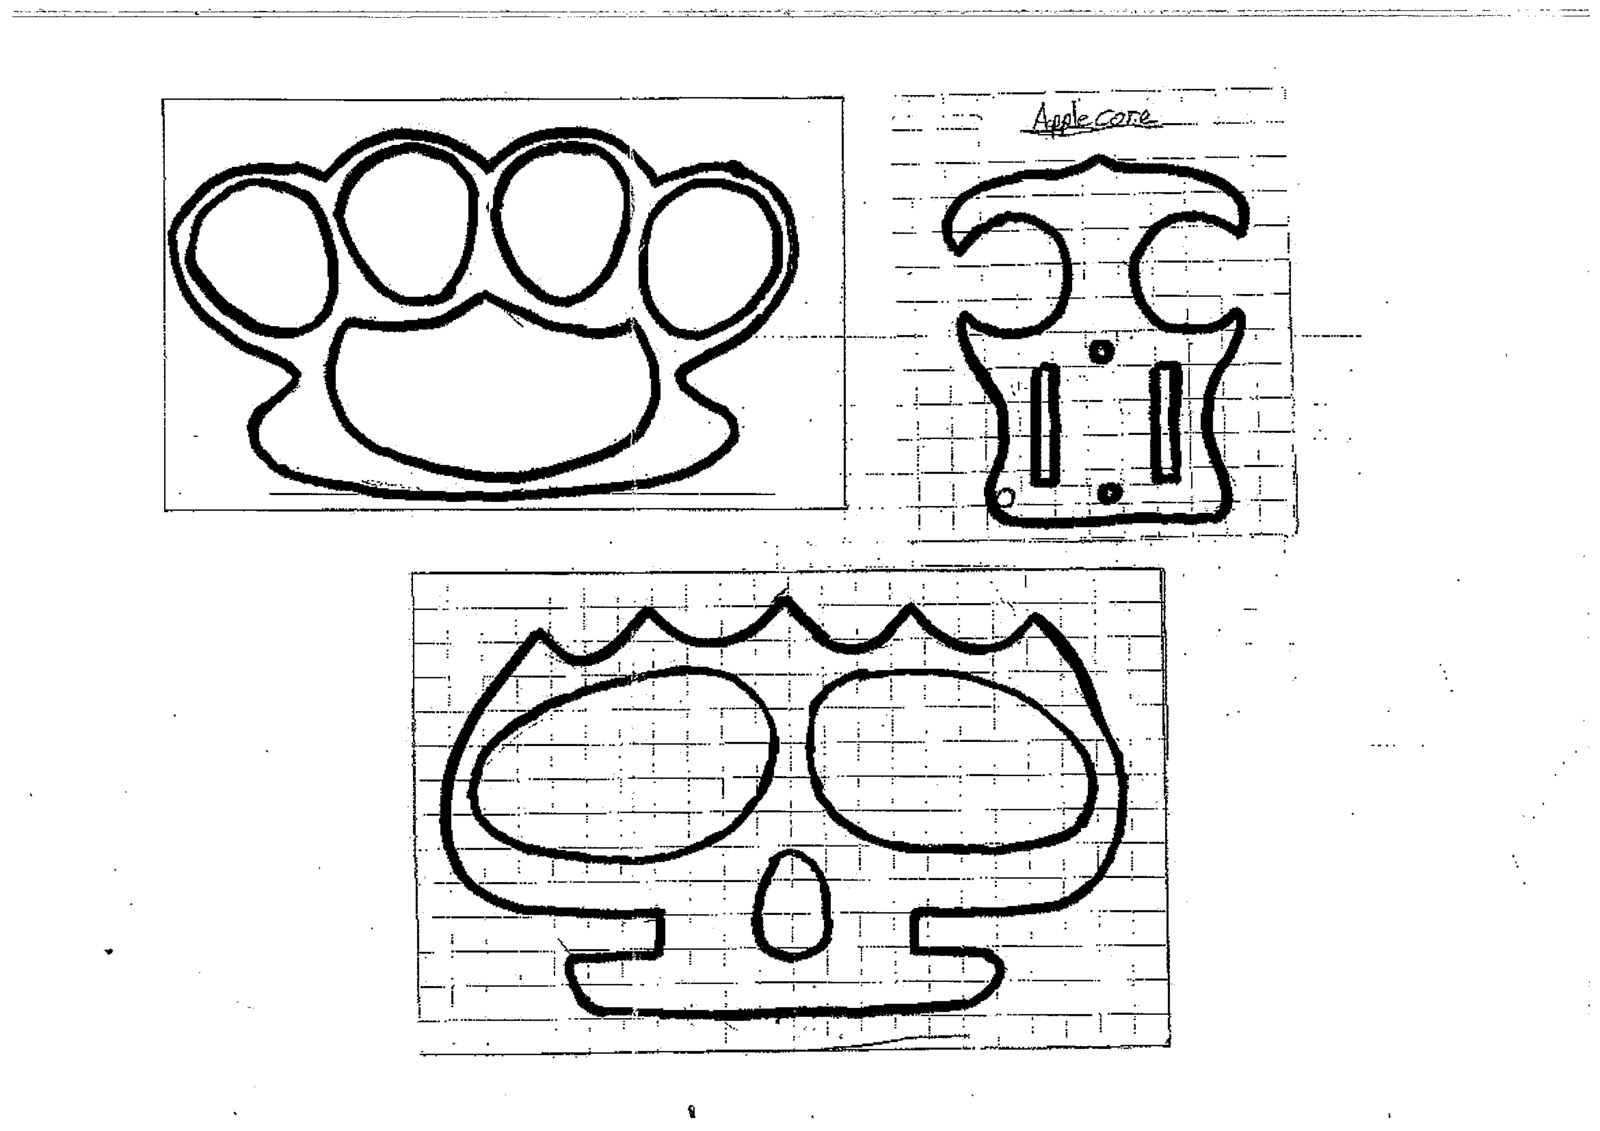 Brass Knuckles Diagram Printable Flower Knuckle Duster Template Make Some Wooden Dusters Free